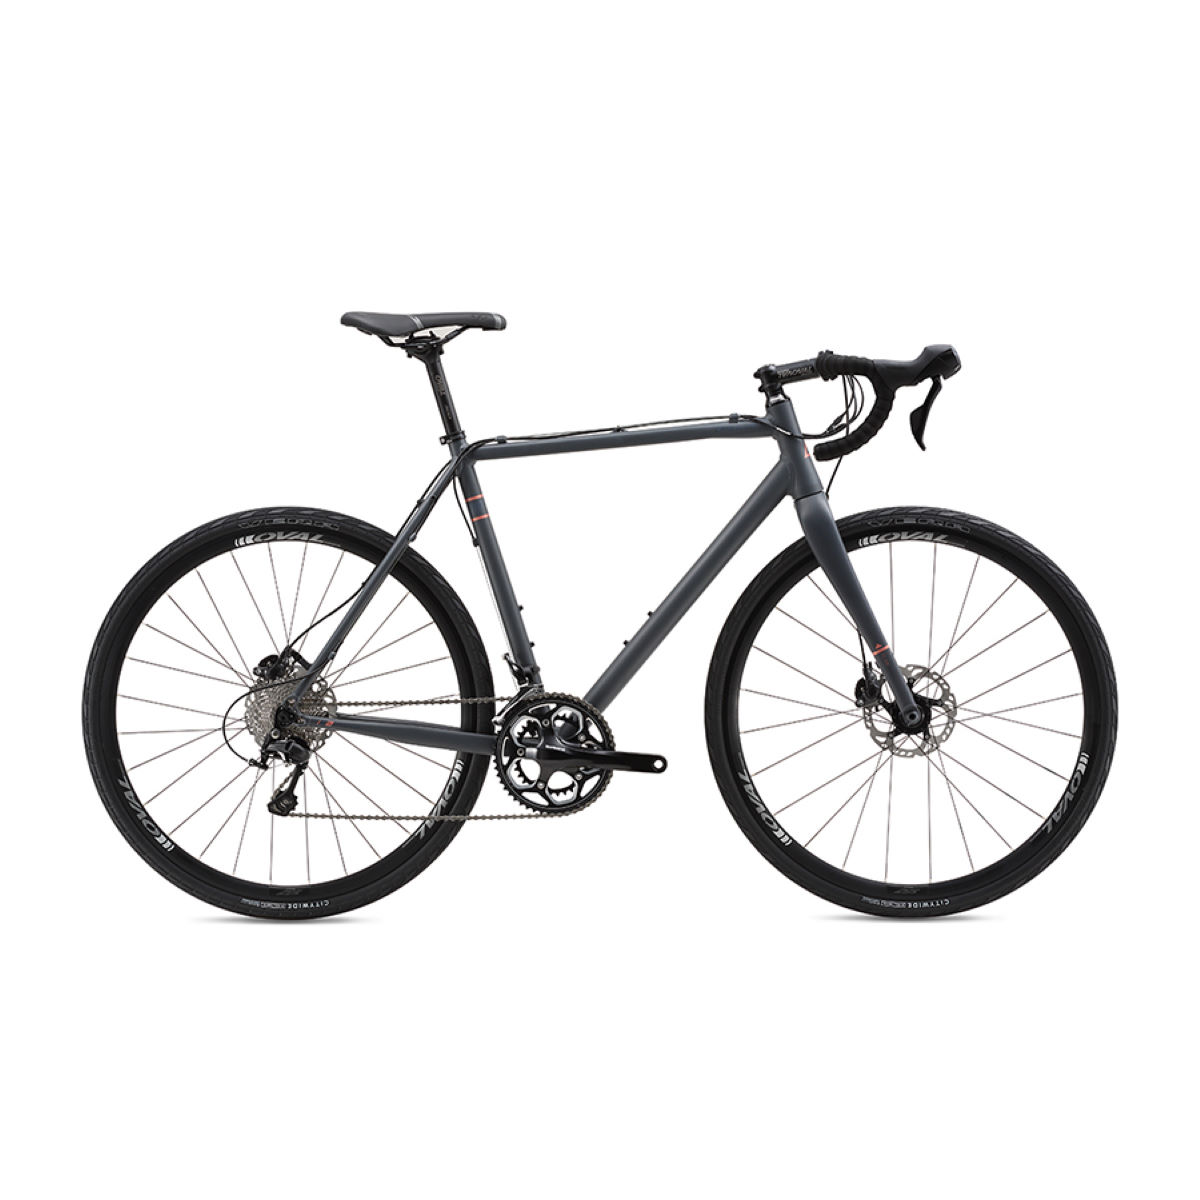 Fuji Tread 1.1 (2016) Adventure Road Bike